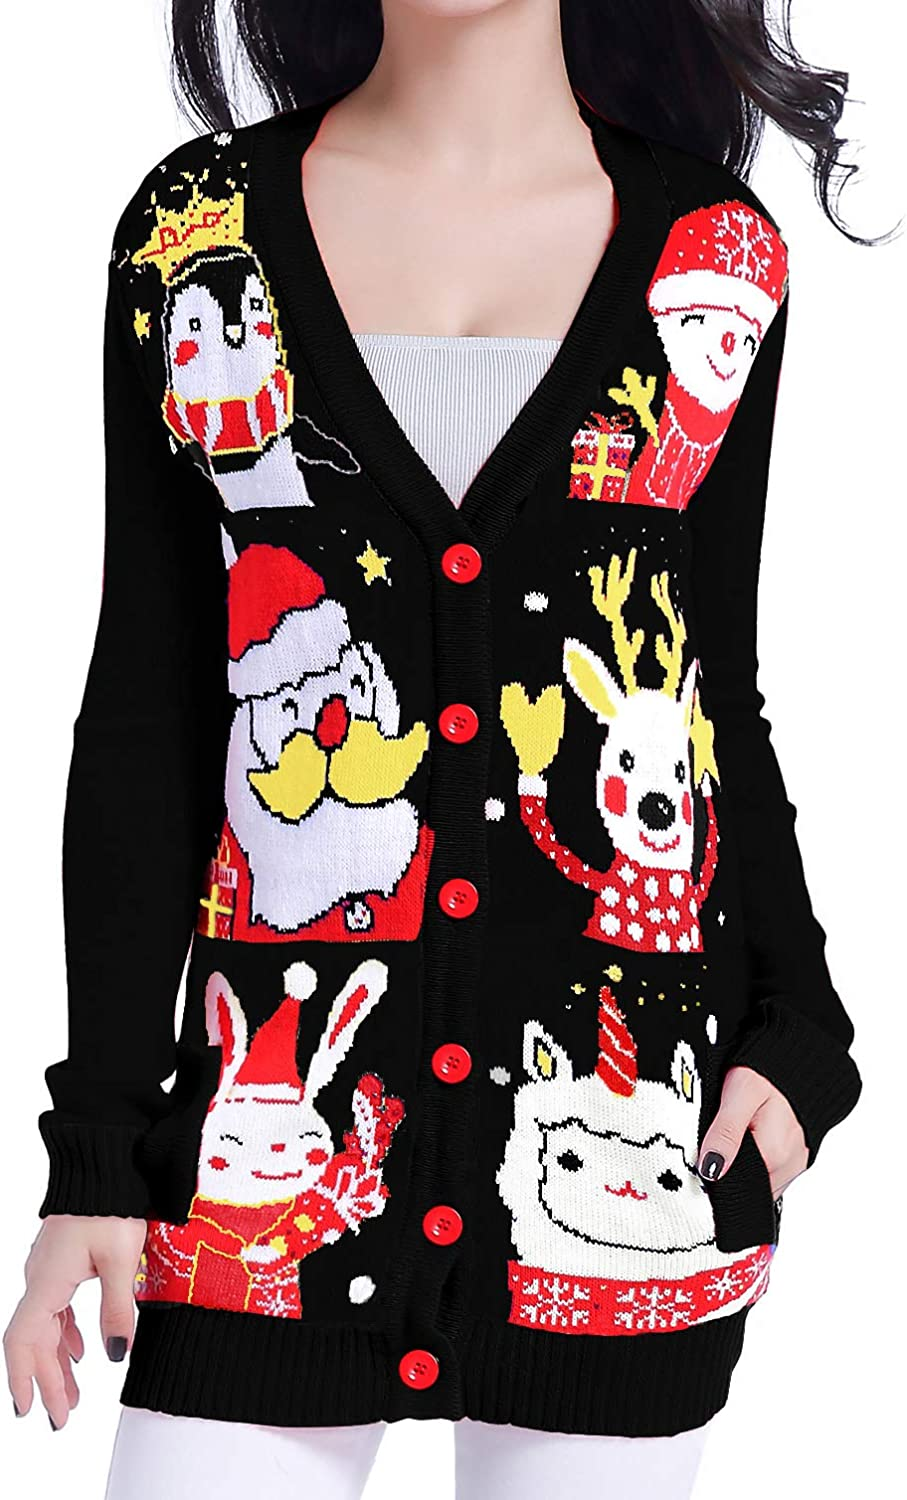 v28 Ugly Christmas Sweater for Women Reindeer Funny Merry Knit Sweaters Cardigan